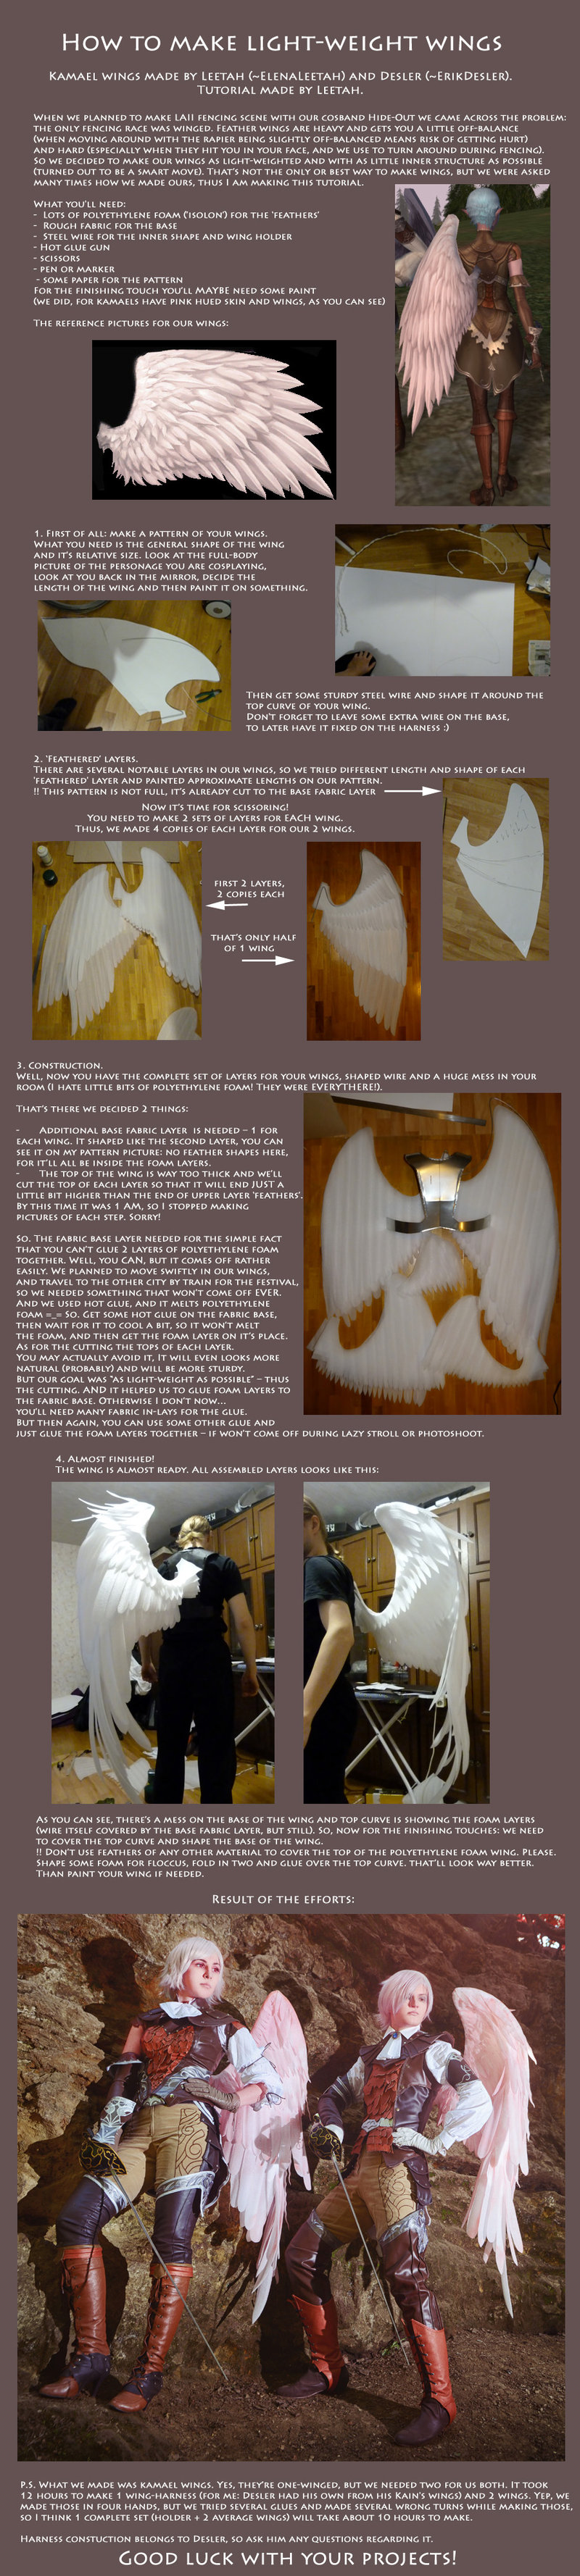 tutorial__how_to_make_light_weight_wings__kamael__by_elenaleetah-d5rka9y